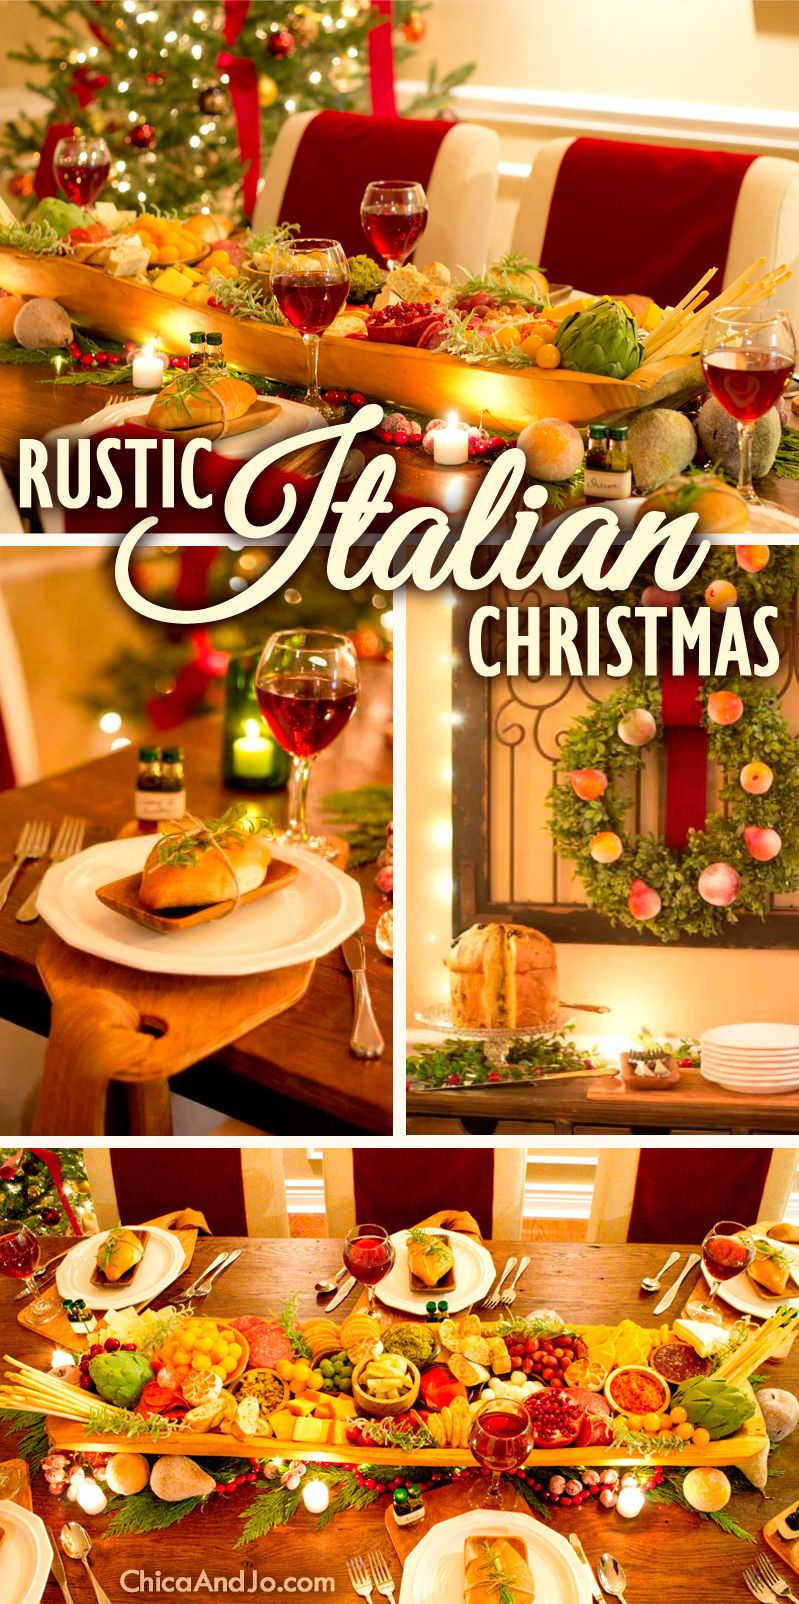 rustic italian christmas dining room table decorations christmasdecor christmas italianstyle - Italian Christmas Table Decorations